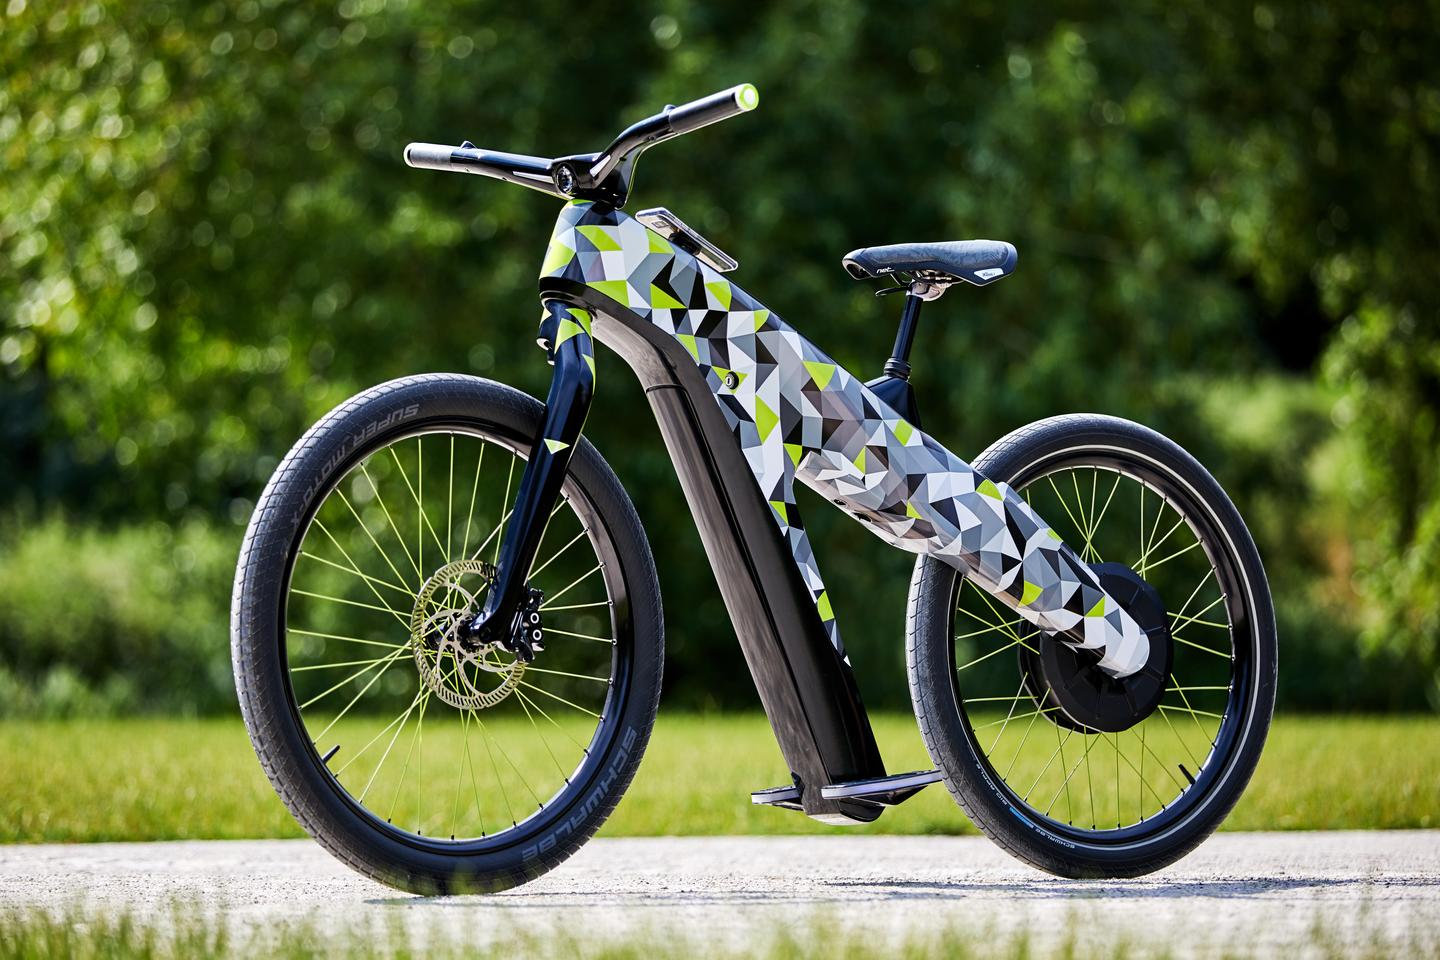 Tilting footrests control both the throttle and brakes on Skoda's Klement concept e-bike